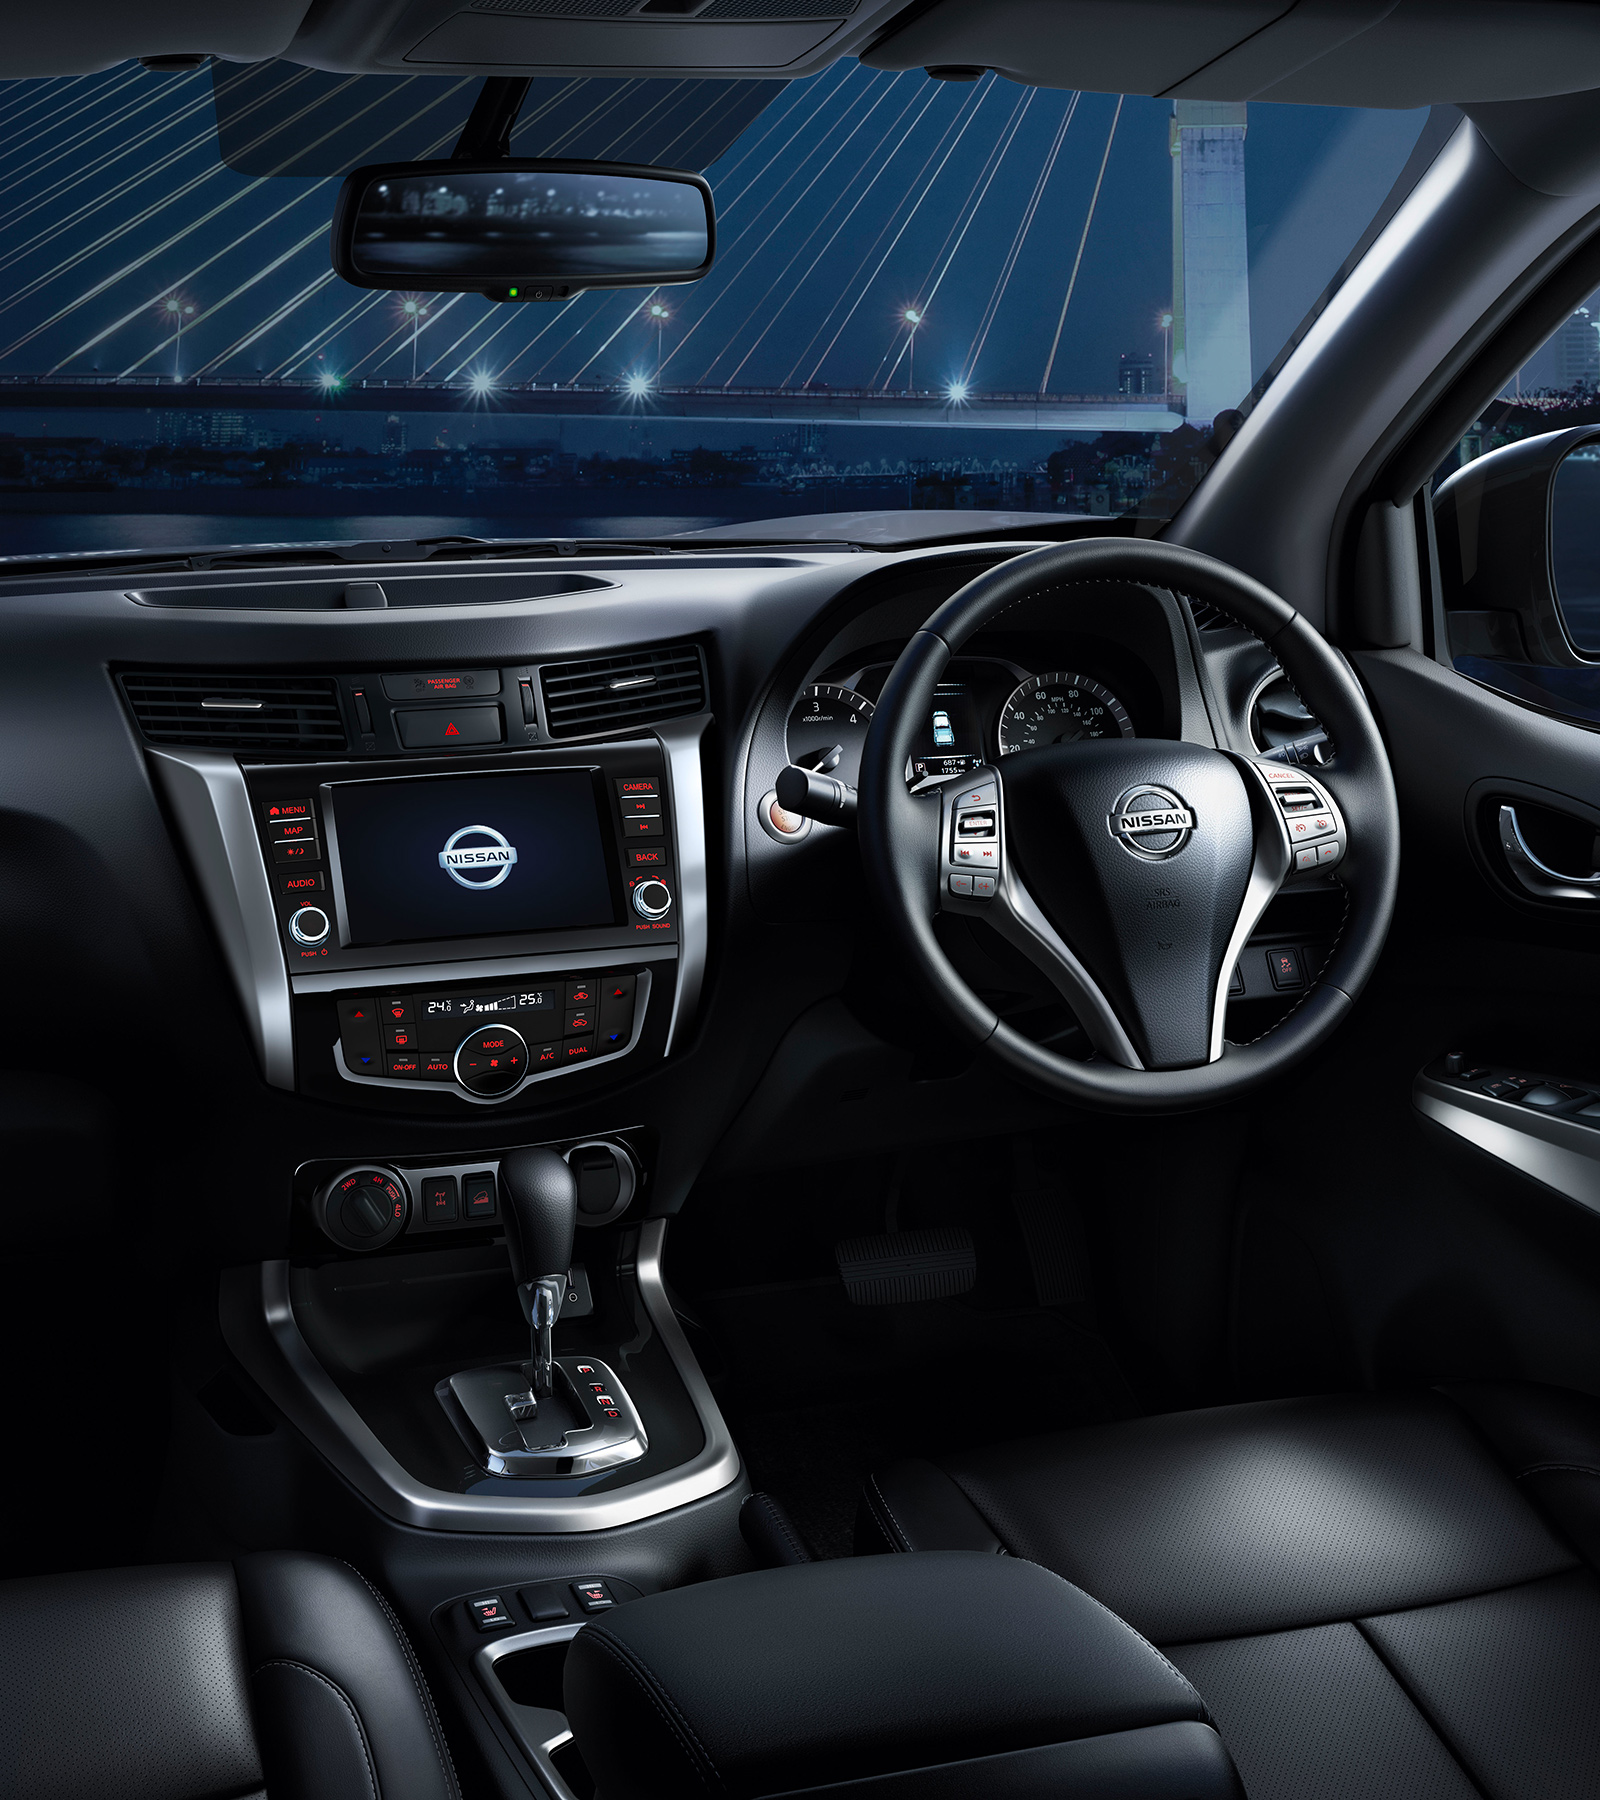 Nissan Navara interior shot showing crossover-like comfort